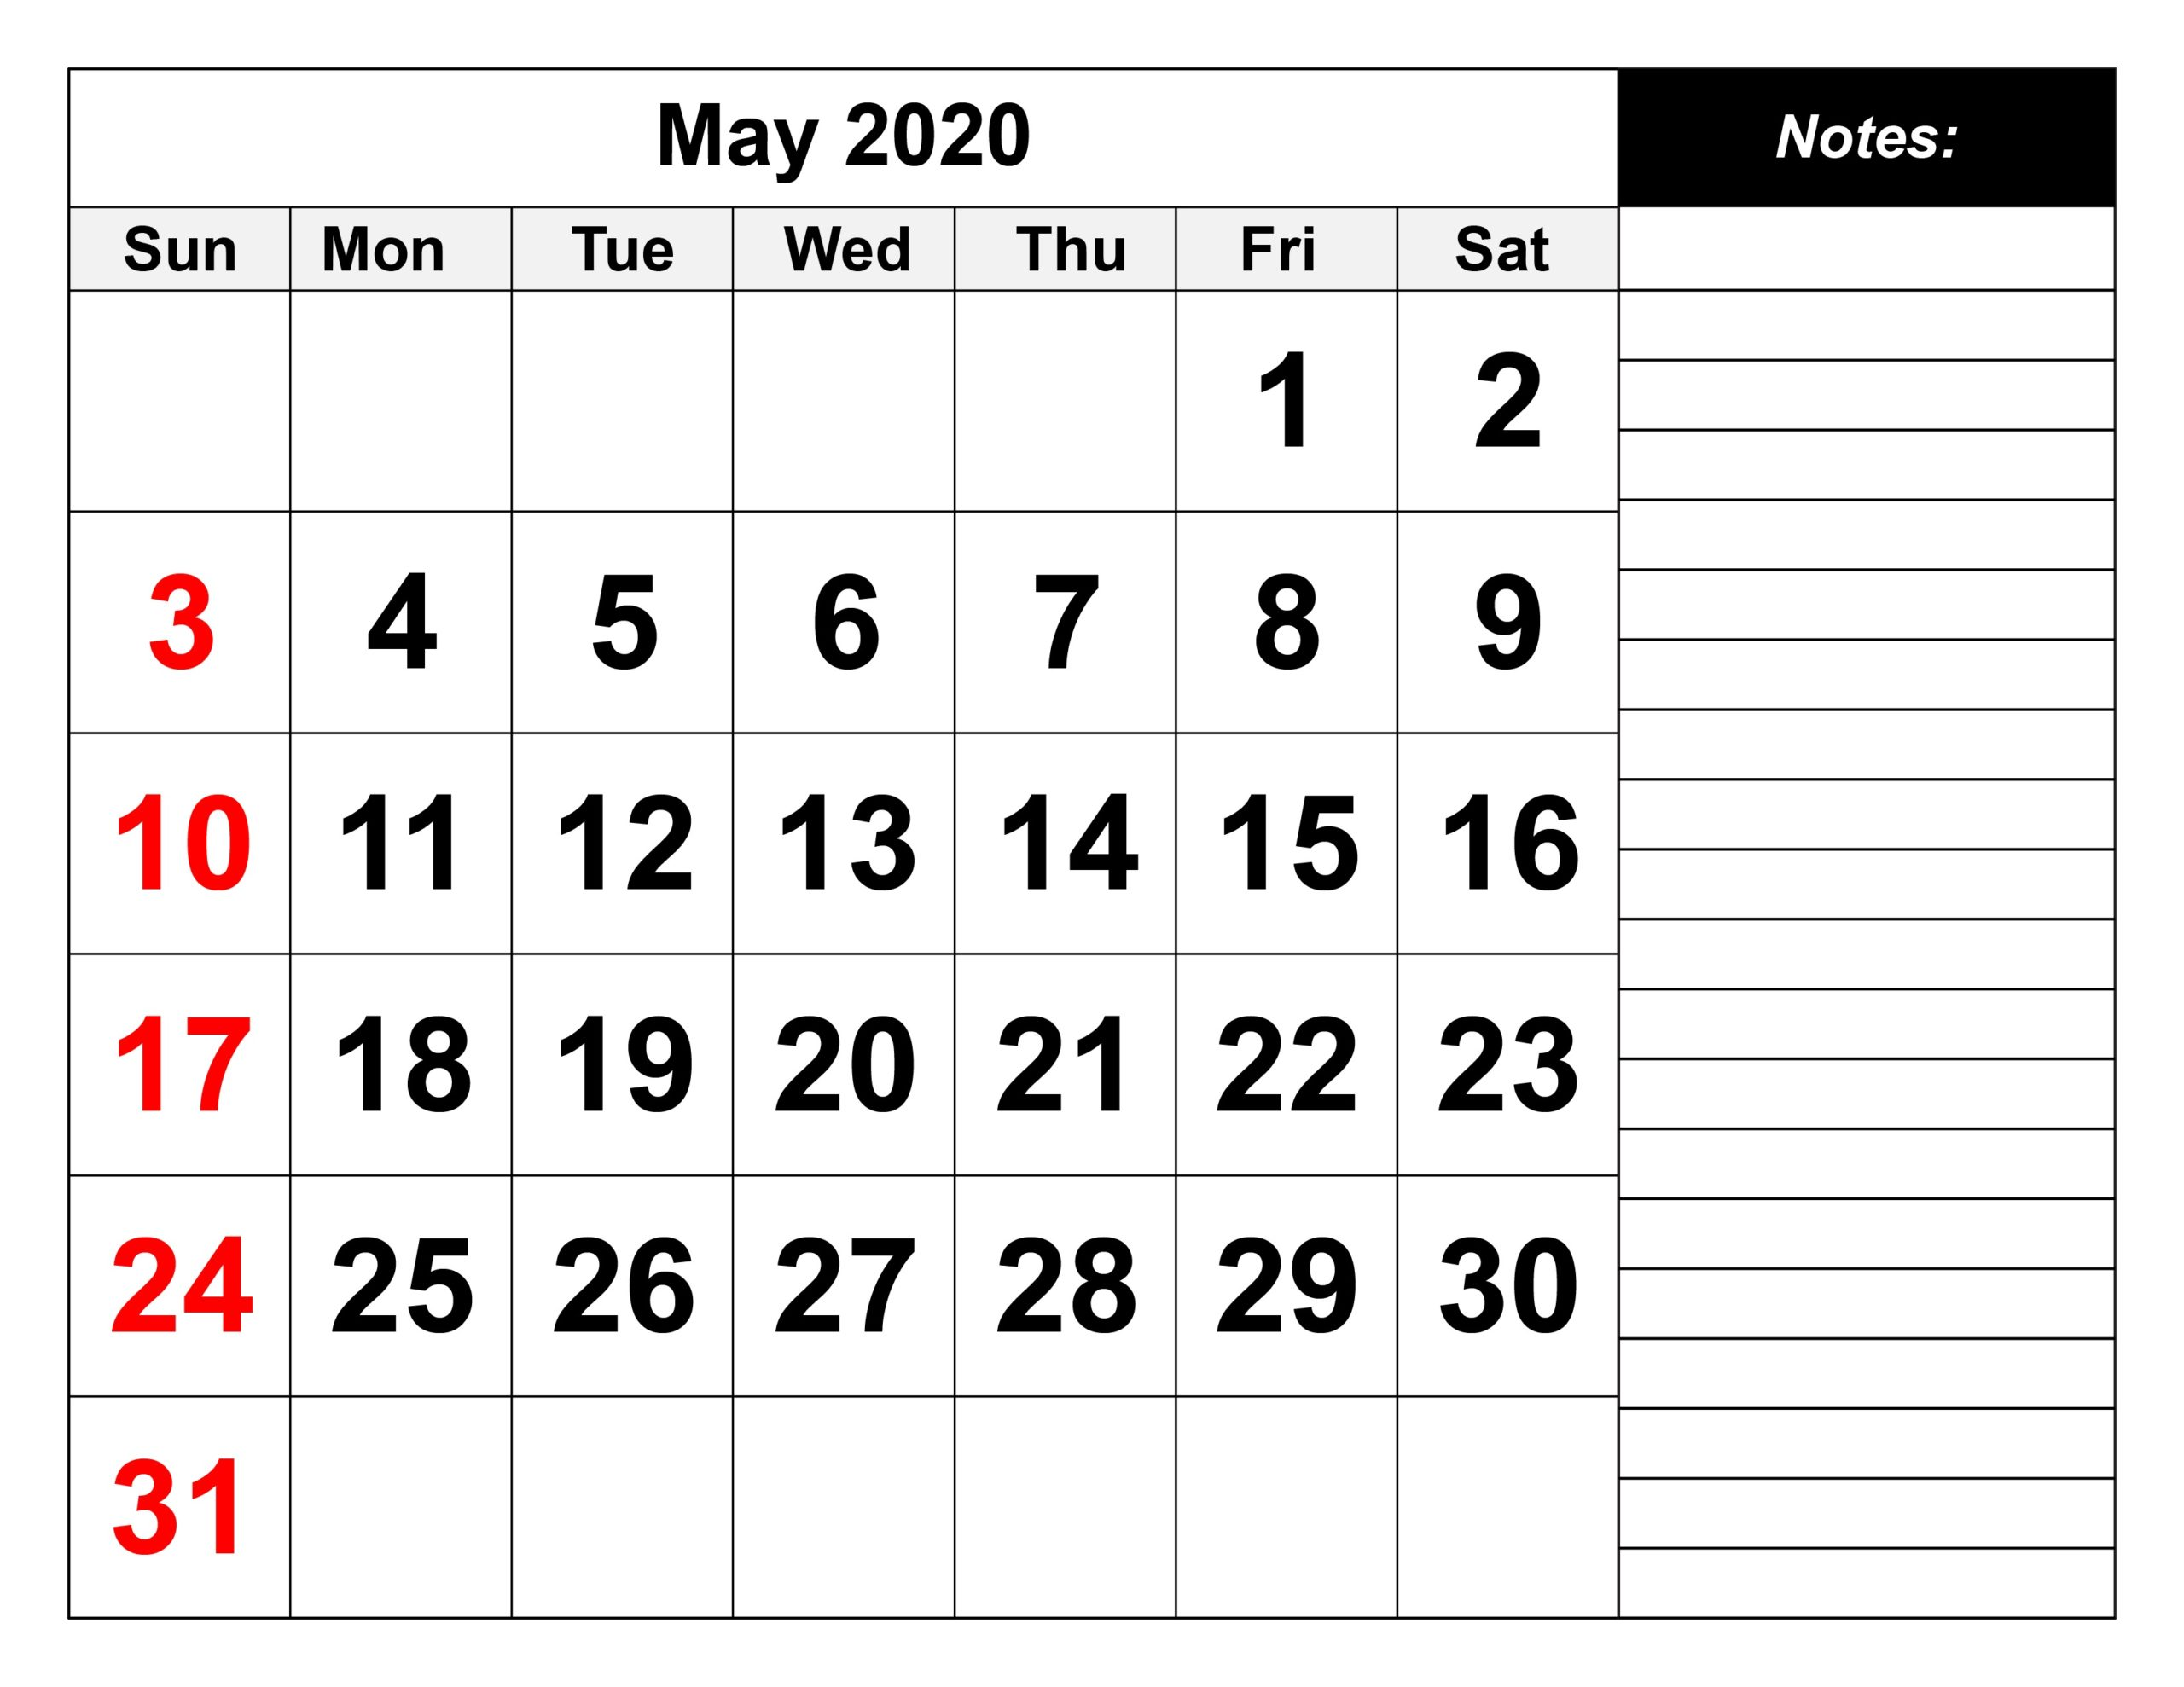 May 2020 calendar excel template